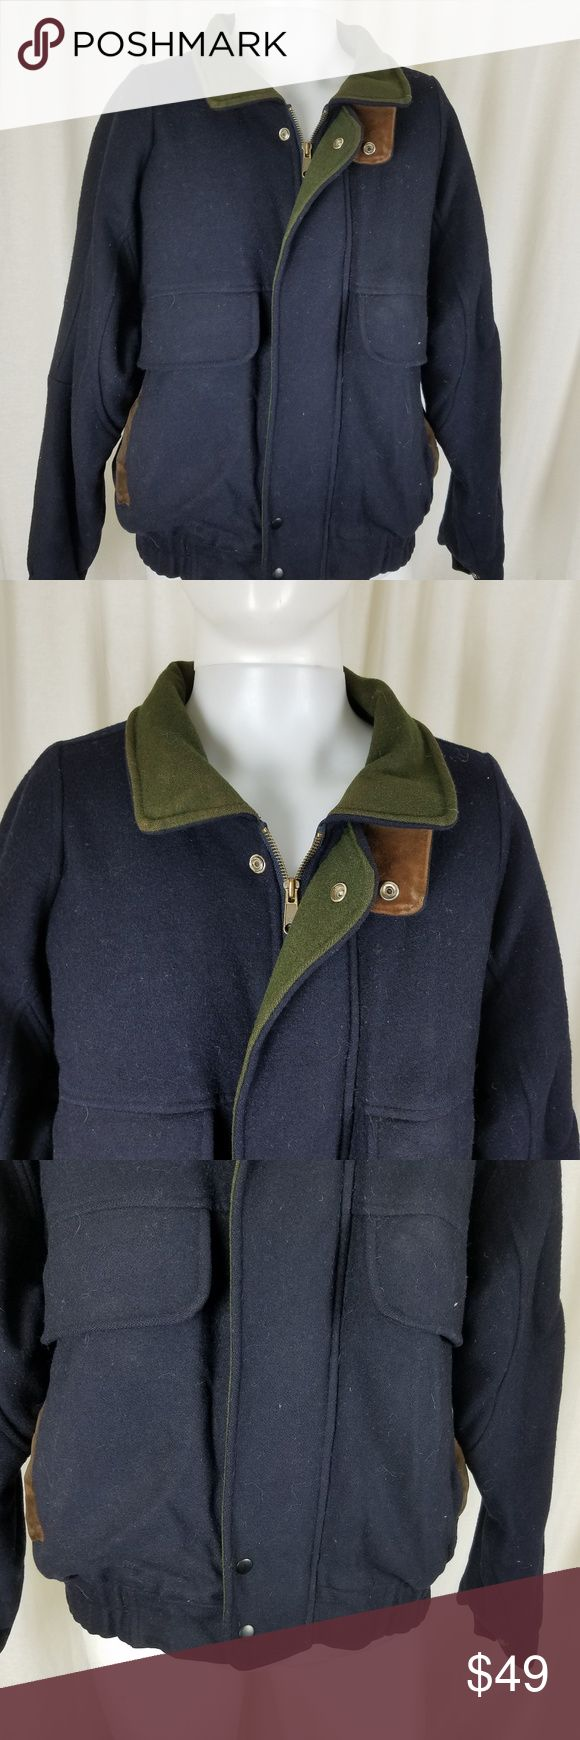 """Woodsman ATA Wool &  Leather Bomber Jacket Mens M Vintage Woodsman ATA Wool Bomber Jacket.    Navy Blue & Olive Green with Brown Leather Trim.  Men's size medium  Good broken in vintage condition with normal signs of wear.   Actual measurements:  Armpit to armpit approx 25.5"""" Shoulder seam to shoulder seam approx 18.5"""" Across the waistband approx 20"""" Sleeve length from shoulder seam to cuff approx 25"""" Length down the back approx 27"""" Woodsman ATA Jackets & Coats Bomber & Varsity"""